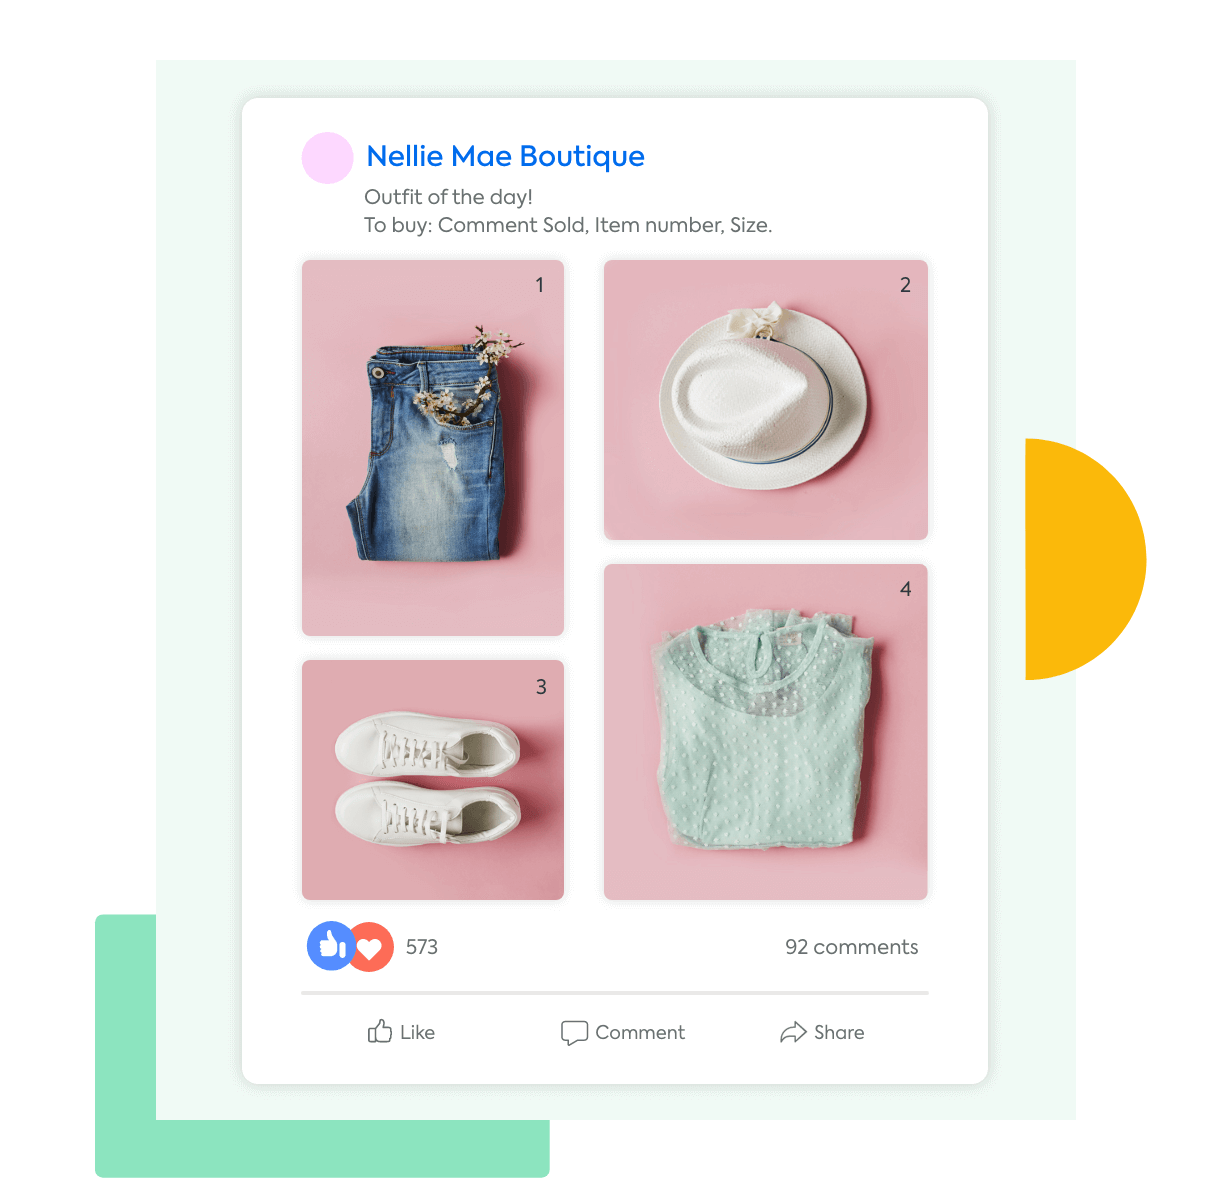 A Facebook post with a collage of women's clothing available for purchase